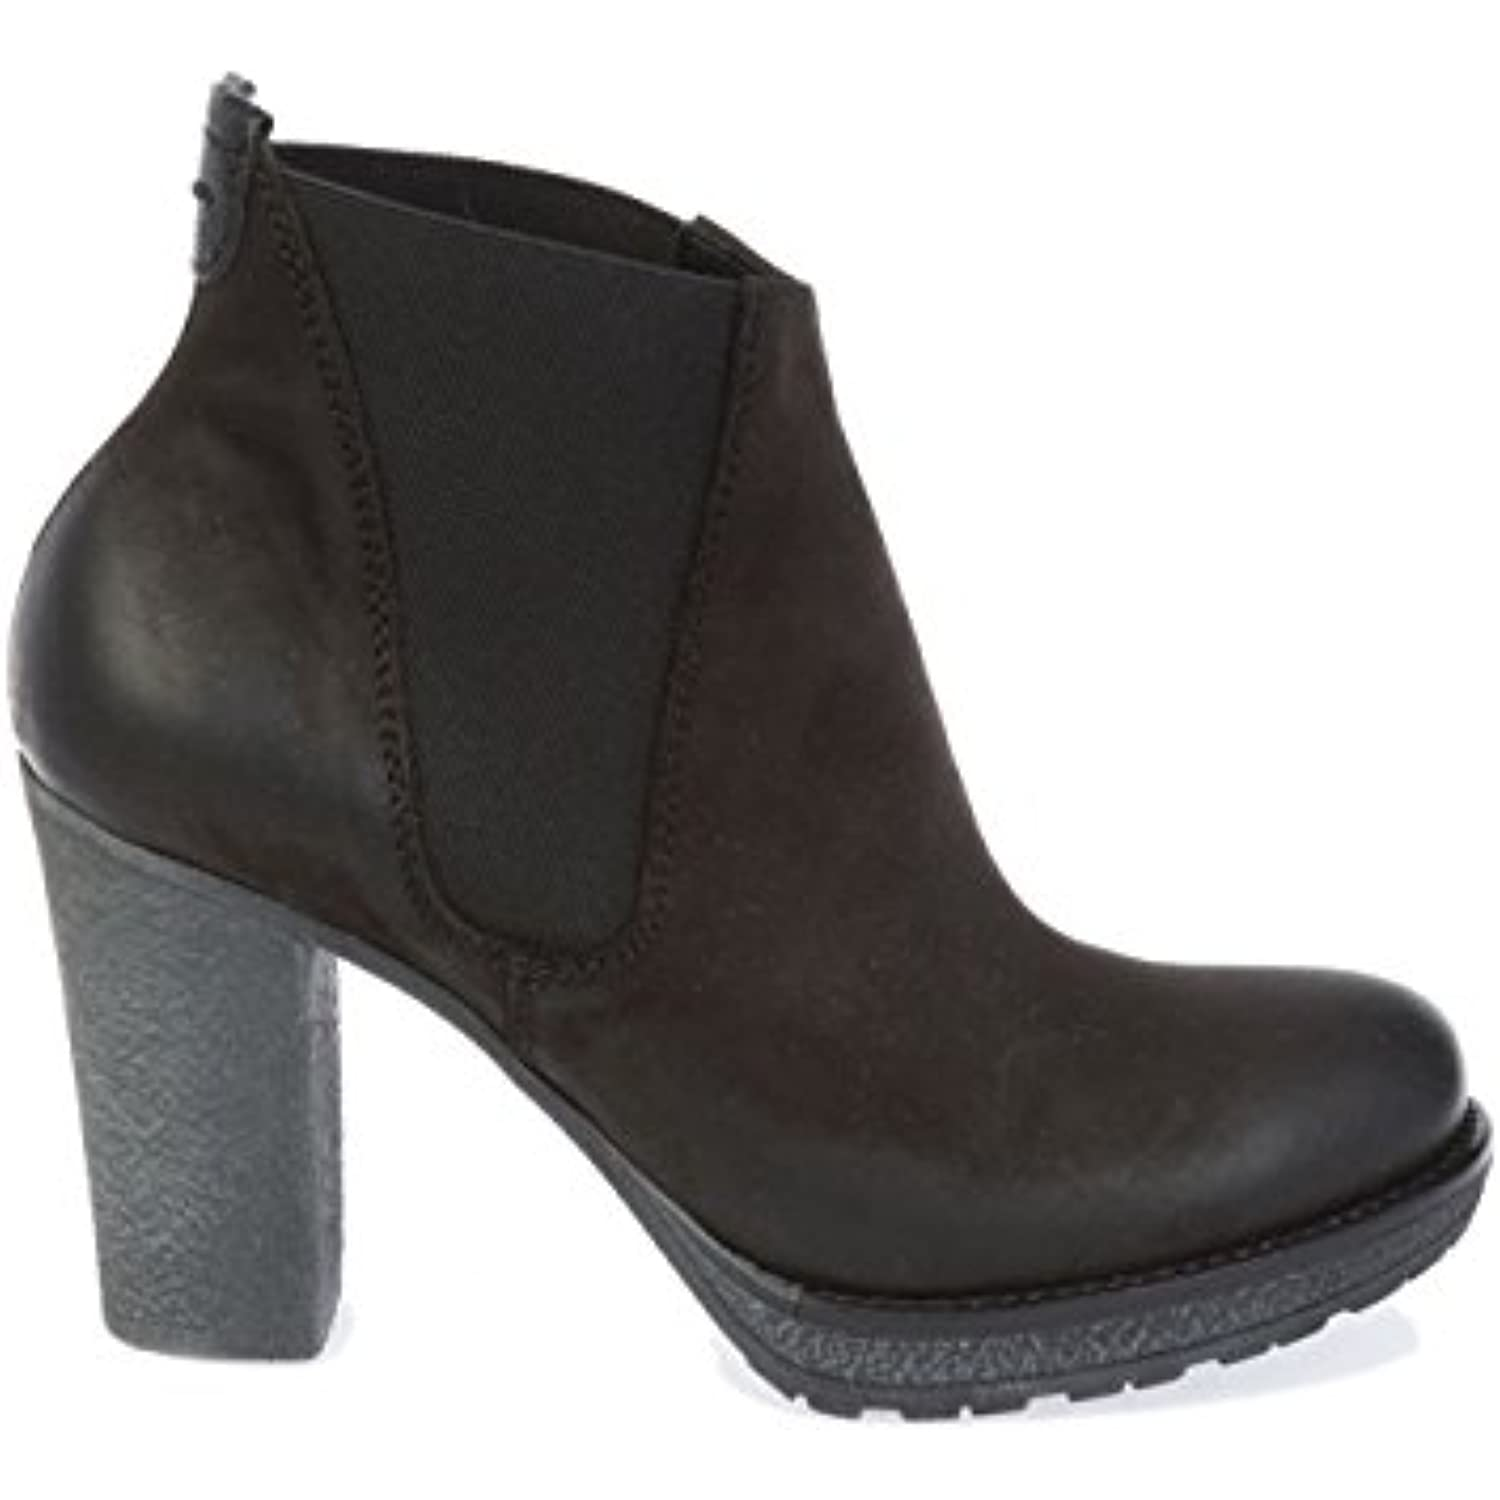 DONNAPIU' Femme Femme DONNAPIU' 7931NERO Marron Cuir Bottines - B0799S9F6X - 04e9bb